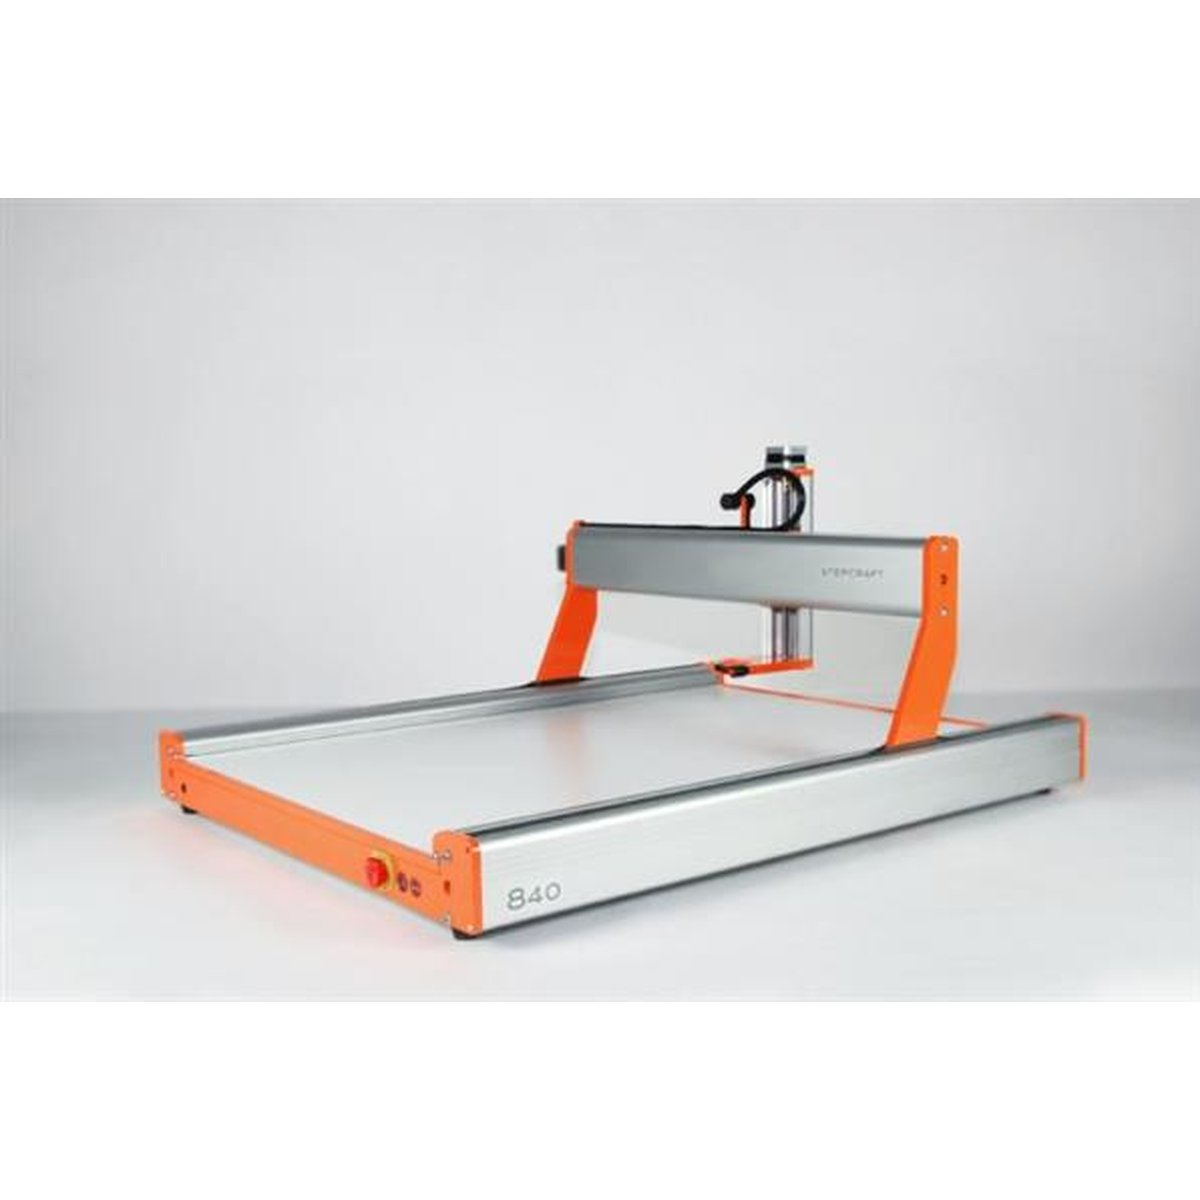 STEPCRAFT-2/D.840 CNC Machine